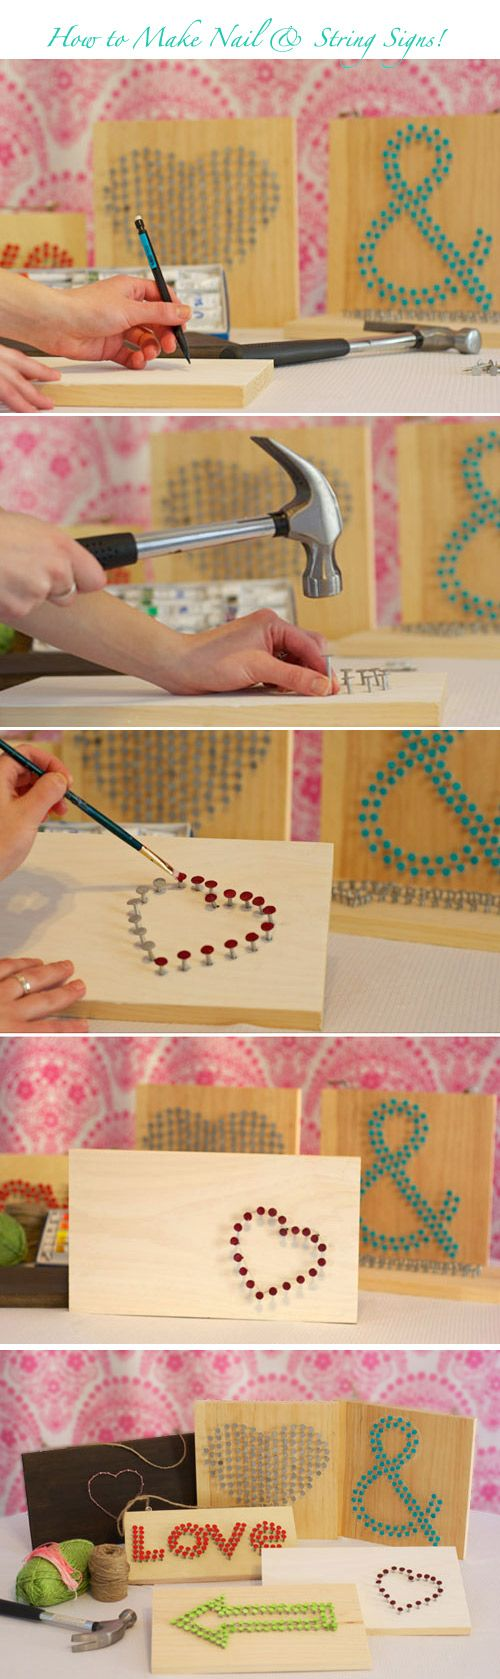 Click here for a DIY tutorial for making custom nail and string art wedding signs!  http://www.weddingwindow.com/blog/2012/05/21/diy-string-nail-wedding-signs/